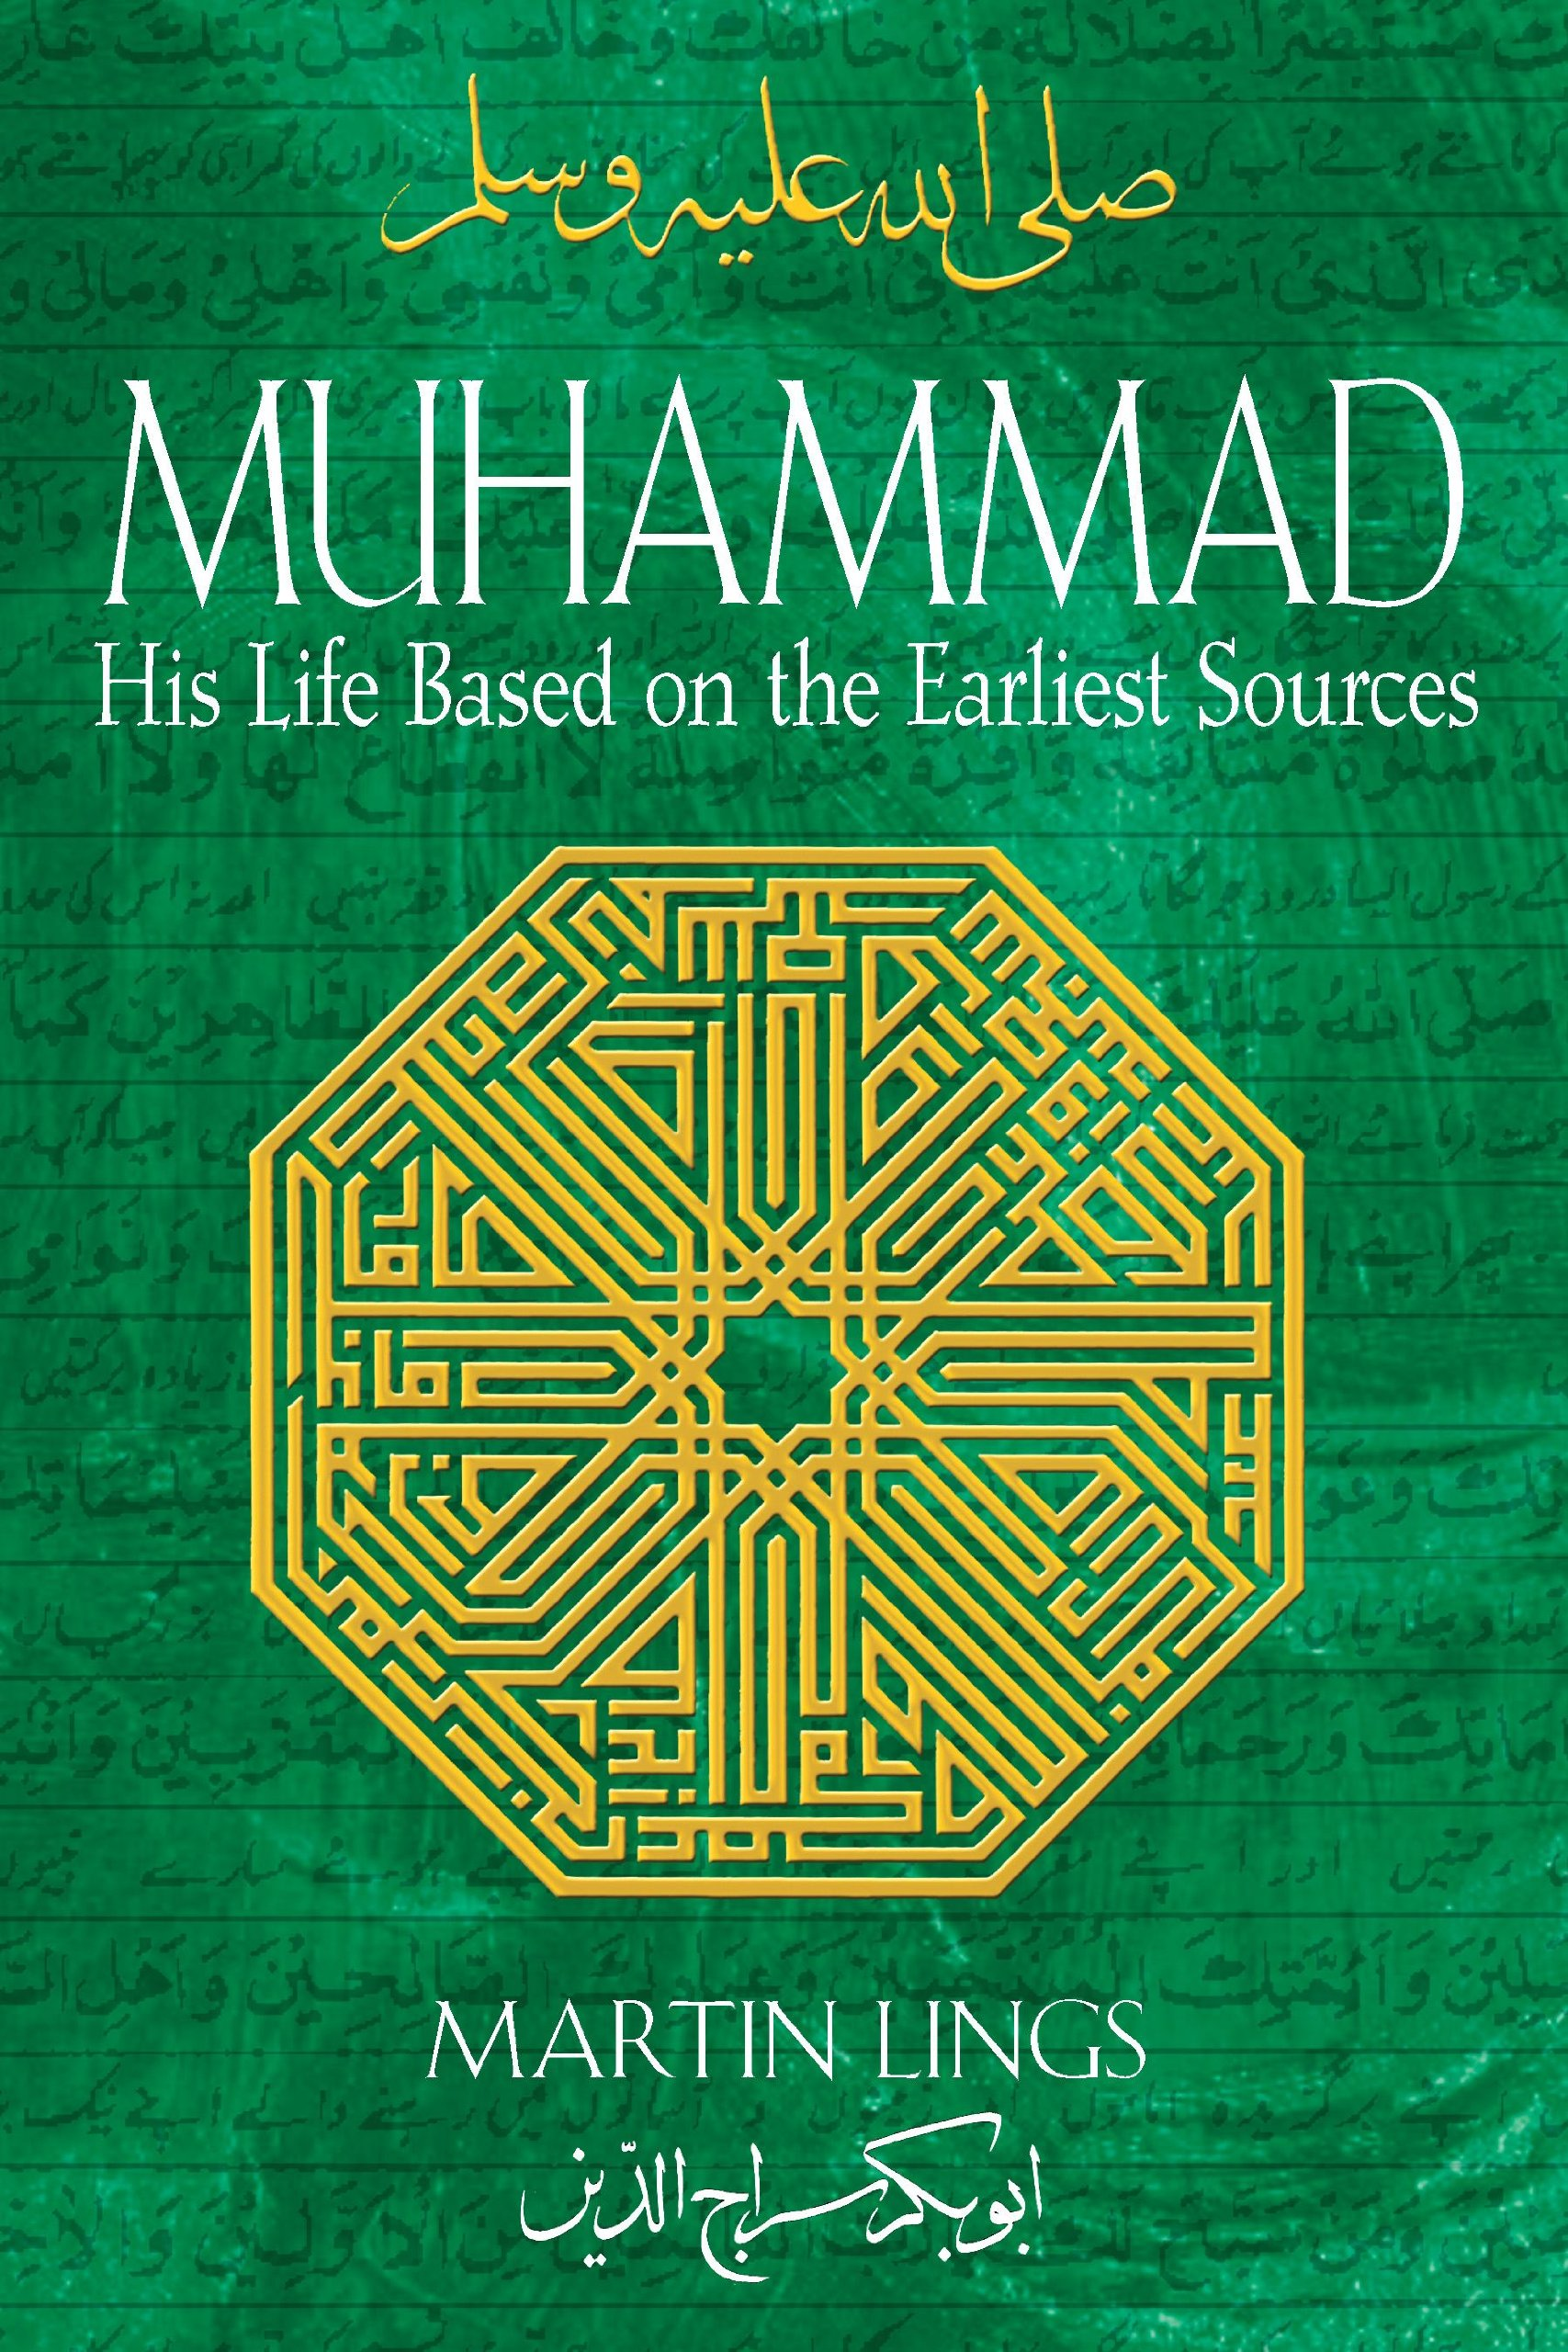 muhammad-his-life-based-on-the-earliest-sources